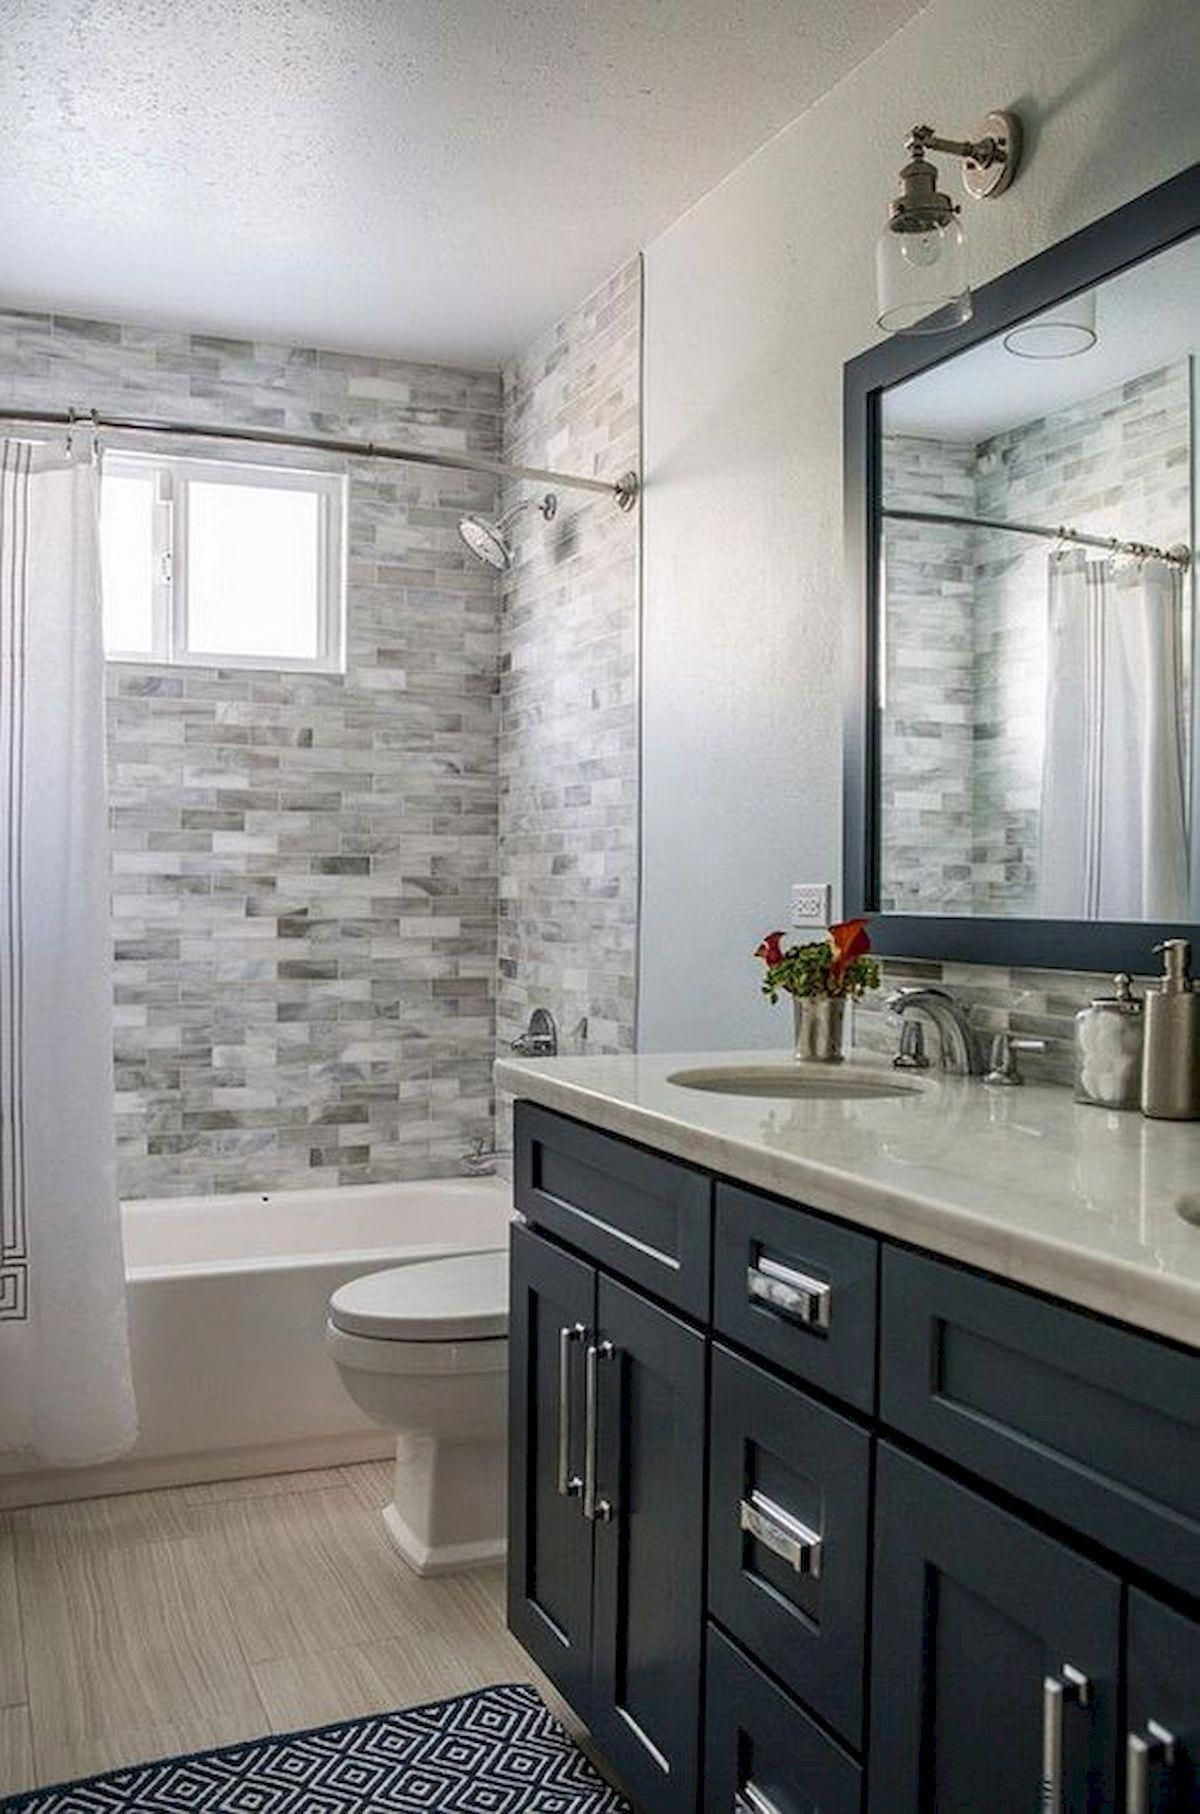 60 Elegant Small Master Bathroom Remodel Ideas 42